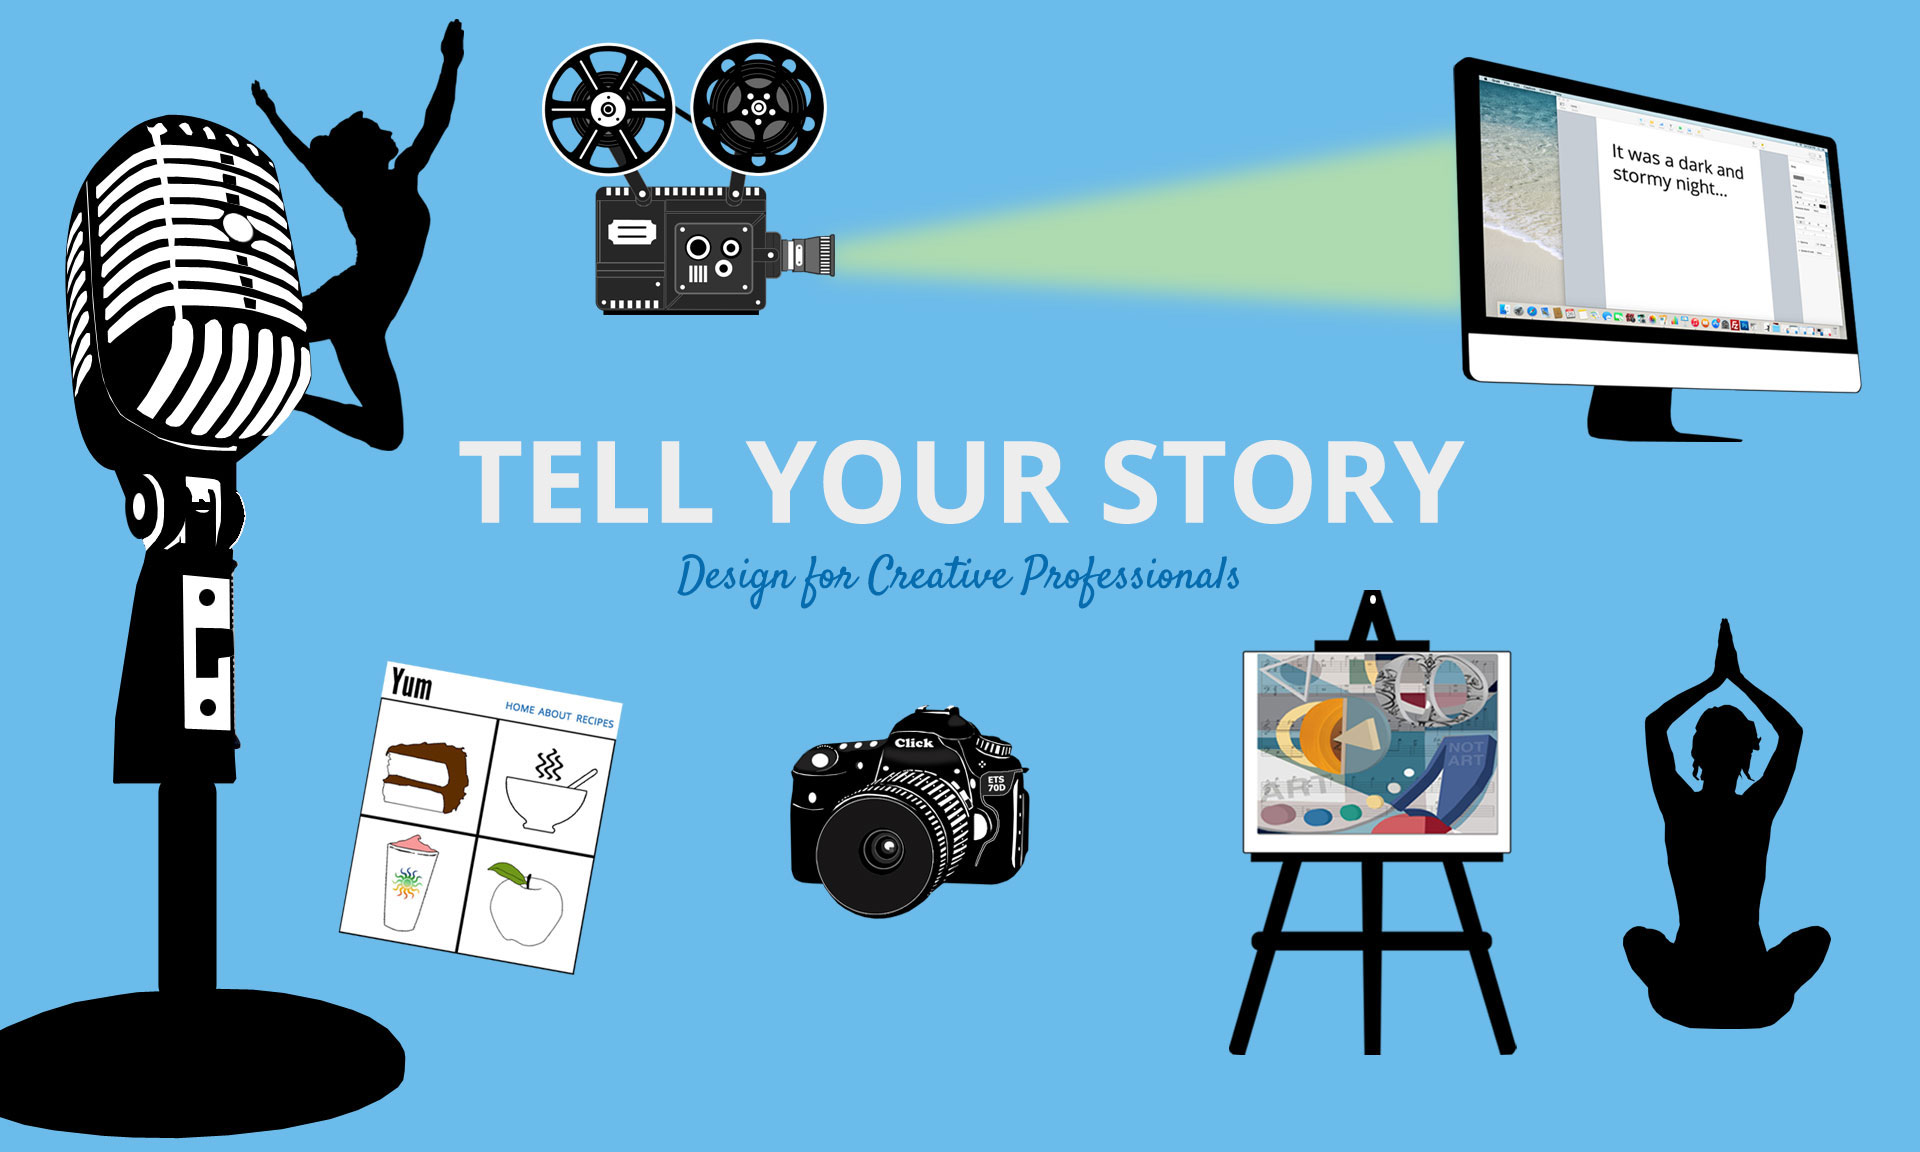 TELL YOUR STORY - Sherry Sink Web Design for Creative Professionals